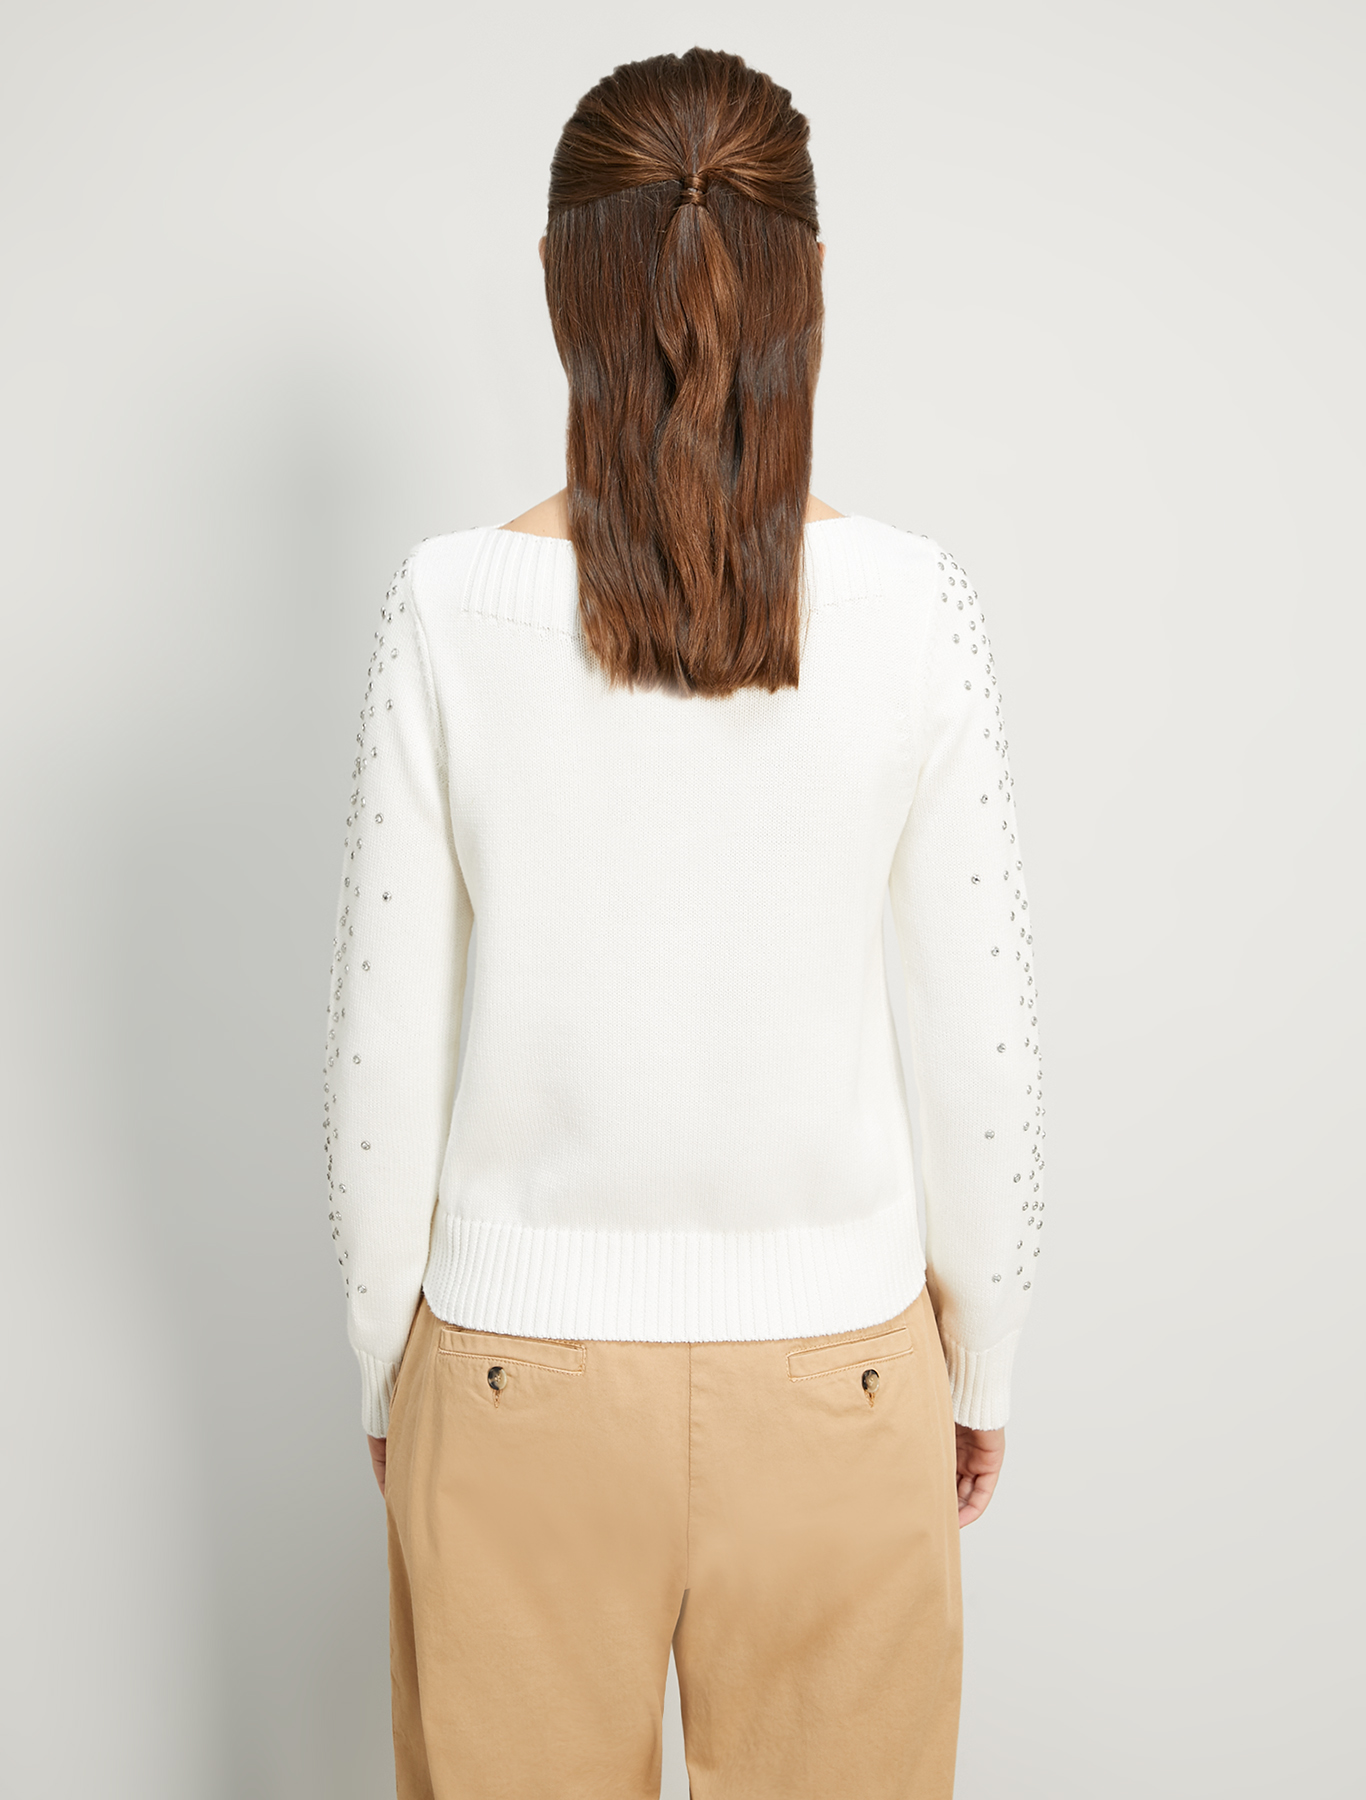 Cotton jumper with rhinestones - ivory - pennyblack